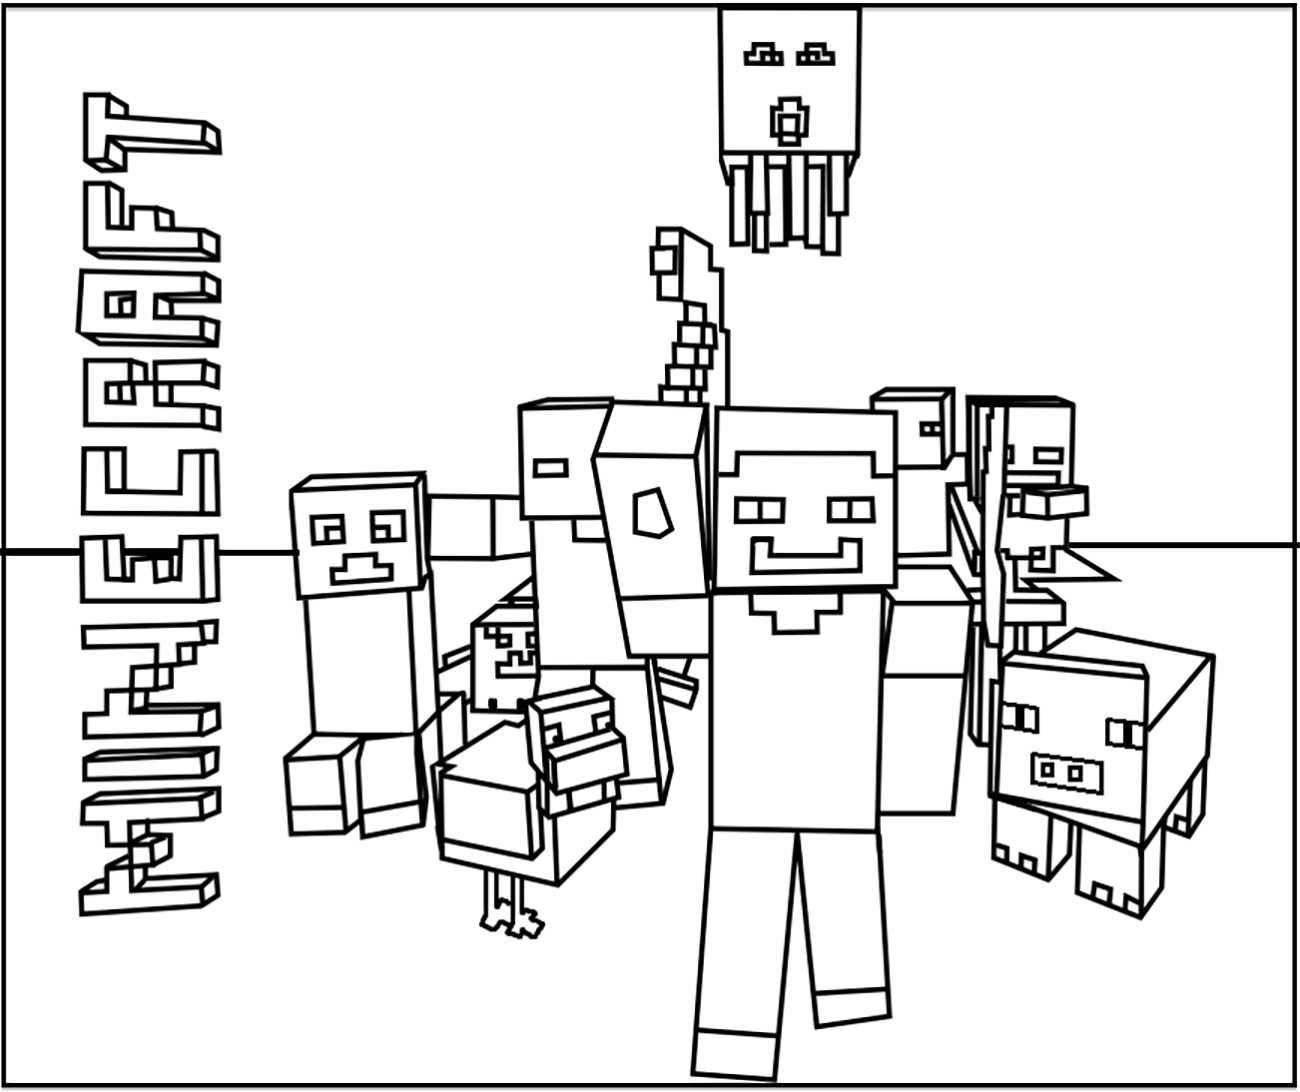 Minecraft free to color for kids - Minecraft - Coloring pages for kids